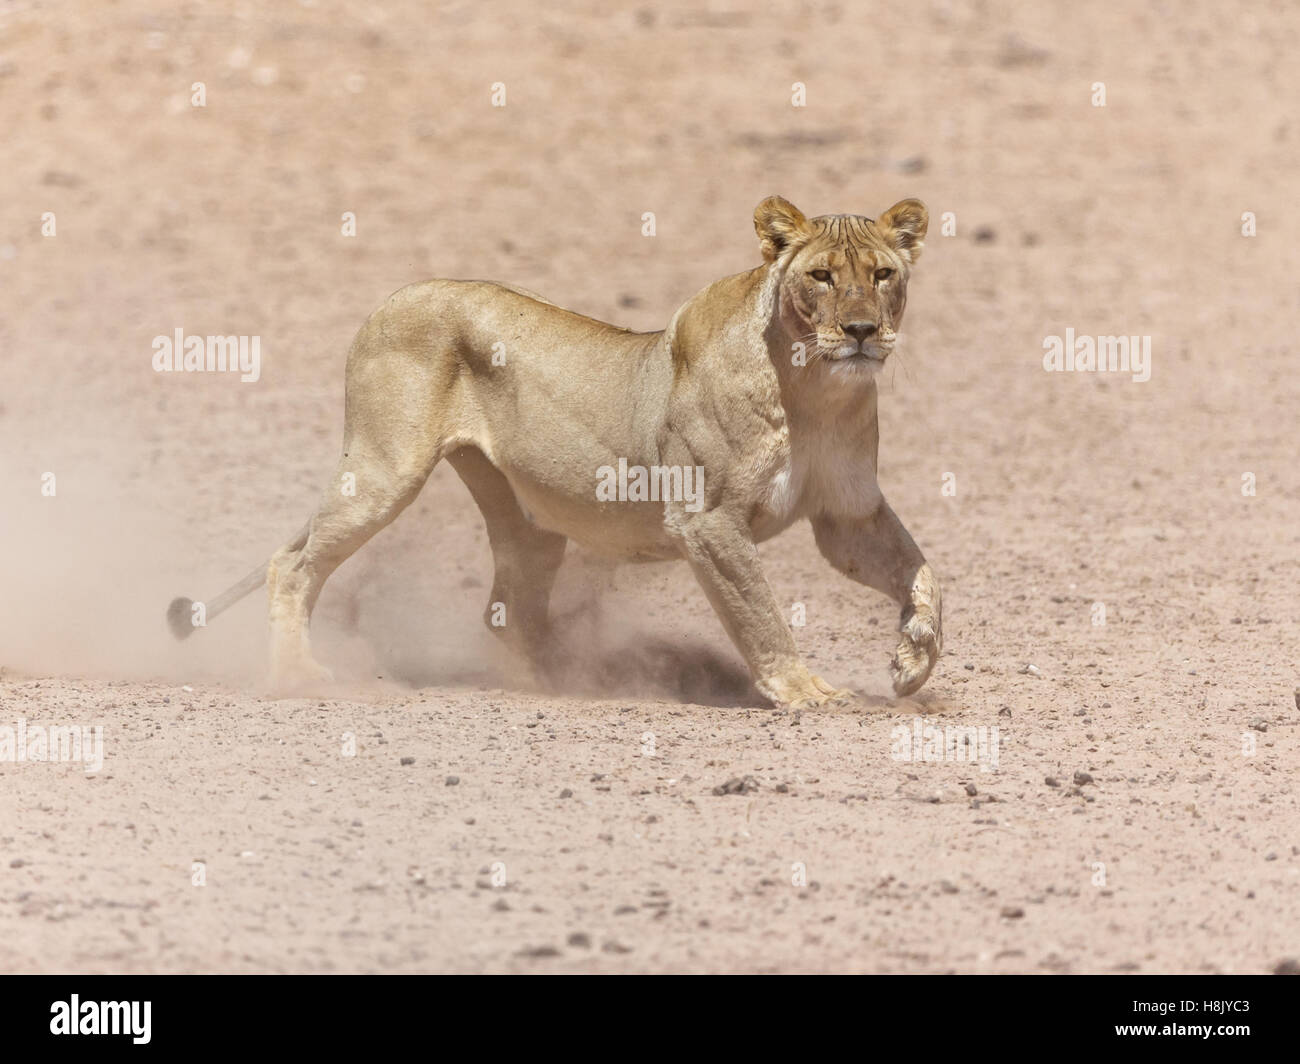 Lioness PANTHERA LEO charging - Stock Image